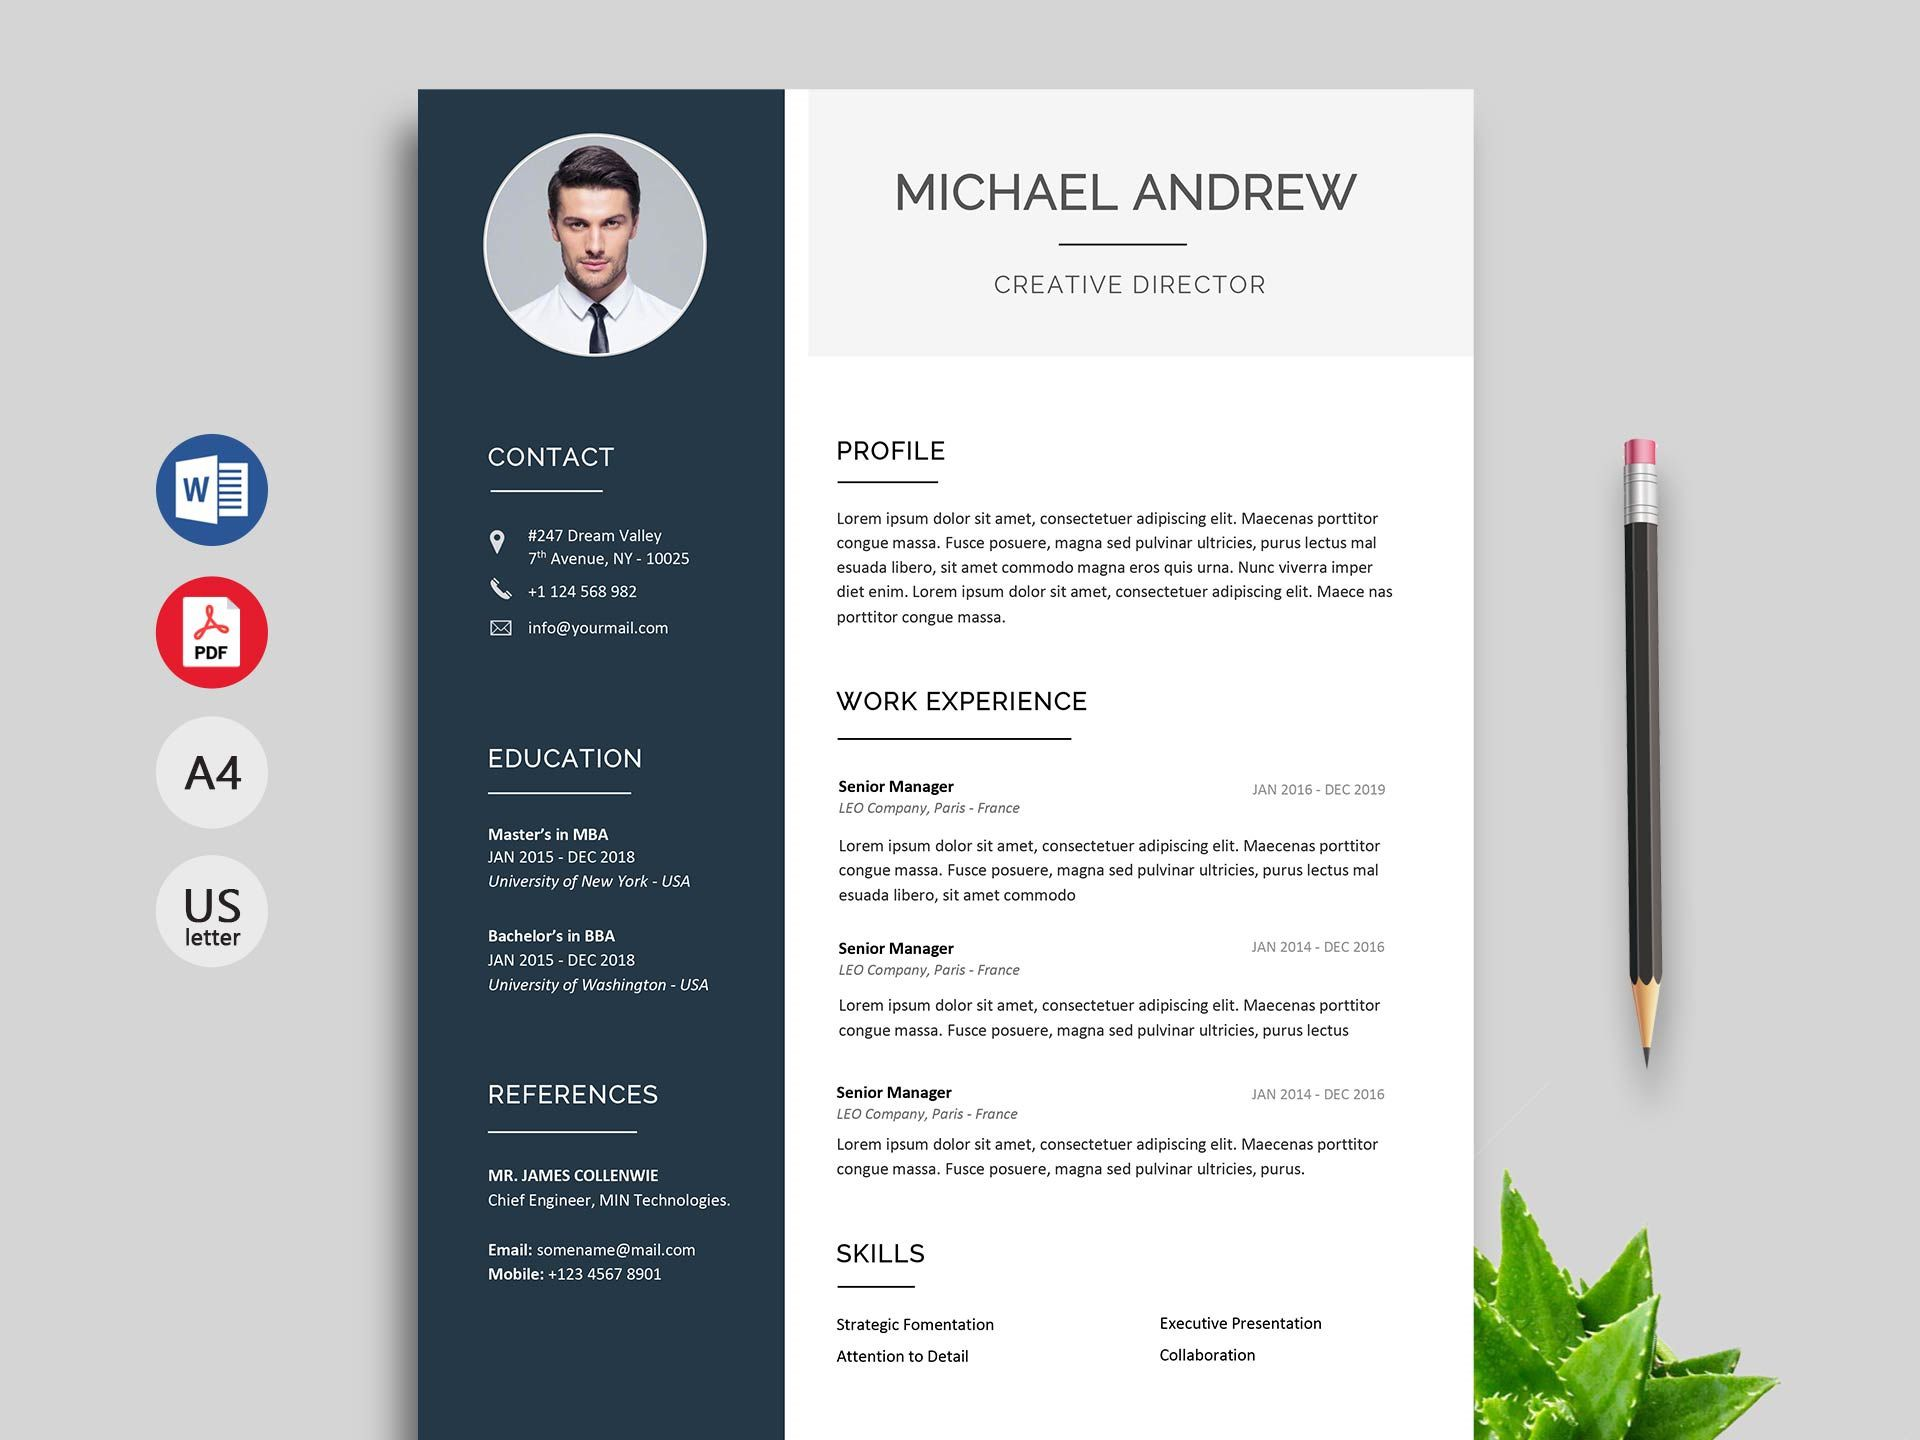 006 Fascinating Creative Resume Template M Word Free Highest Clarity Full